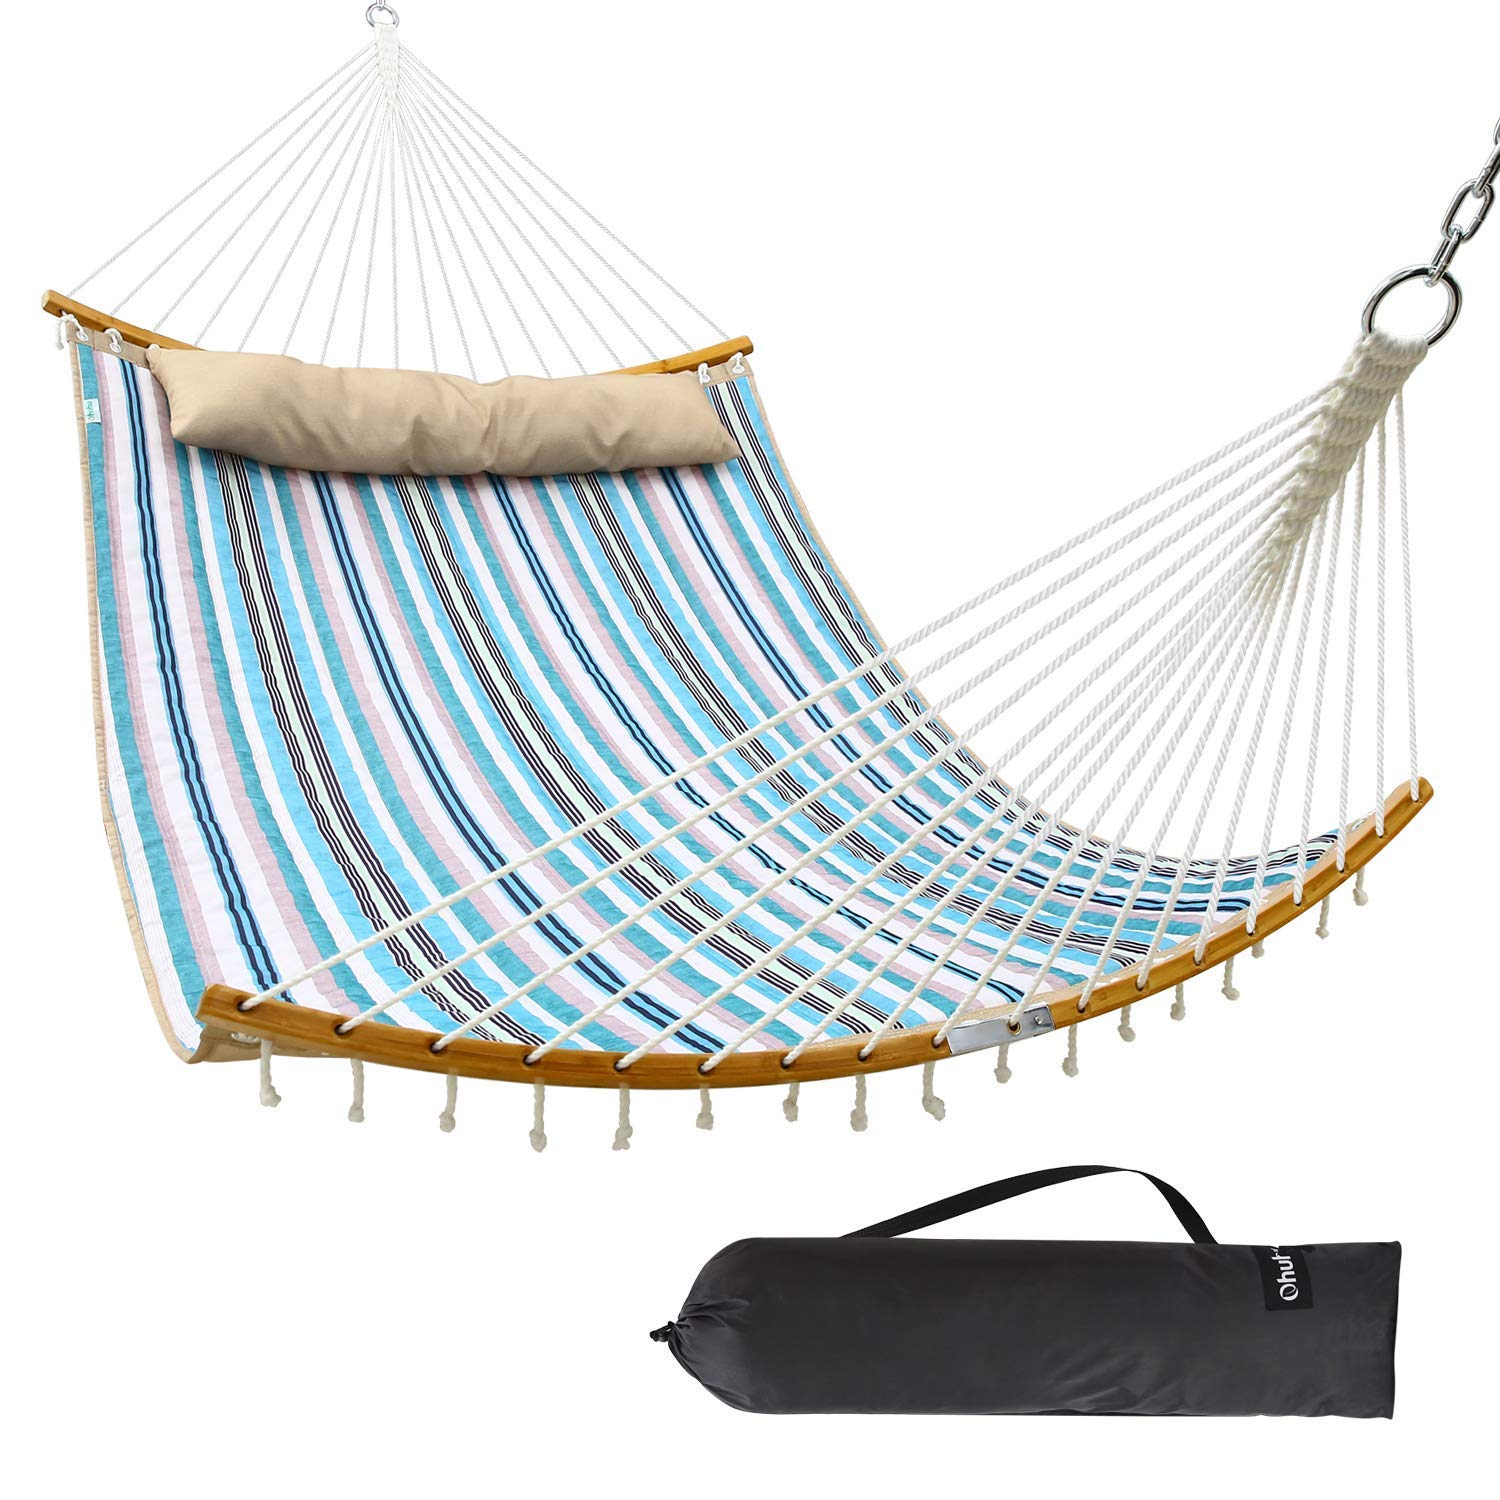 Ohuhu Double Hammock Quilted Fabric Swing with Strong Curved-Bar Bamboo Detachable Pillow, 55 x75 Large Hammocks with Carrying Bag, 4.6 W x 6.2 L, Blue White Stripe